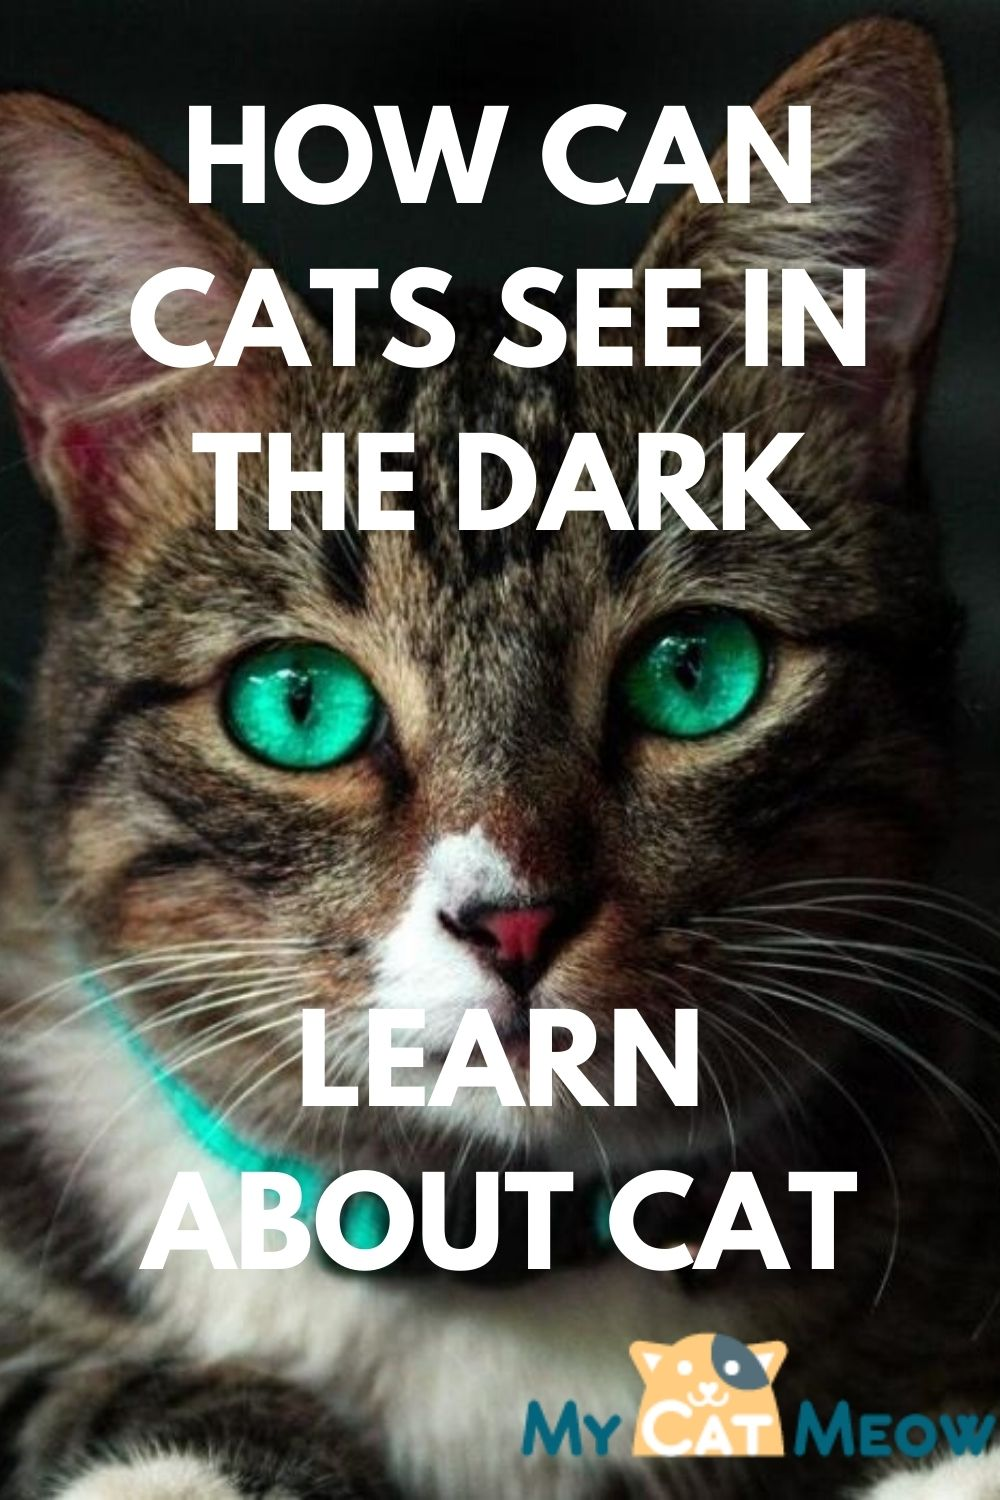 How can Cats see in the dark